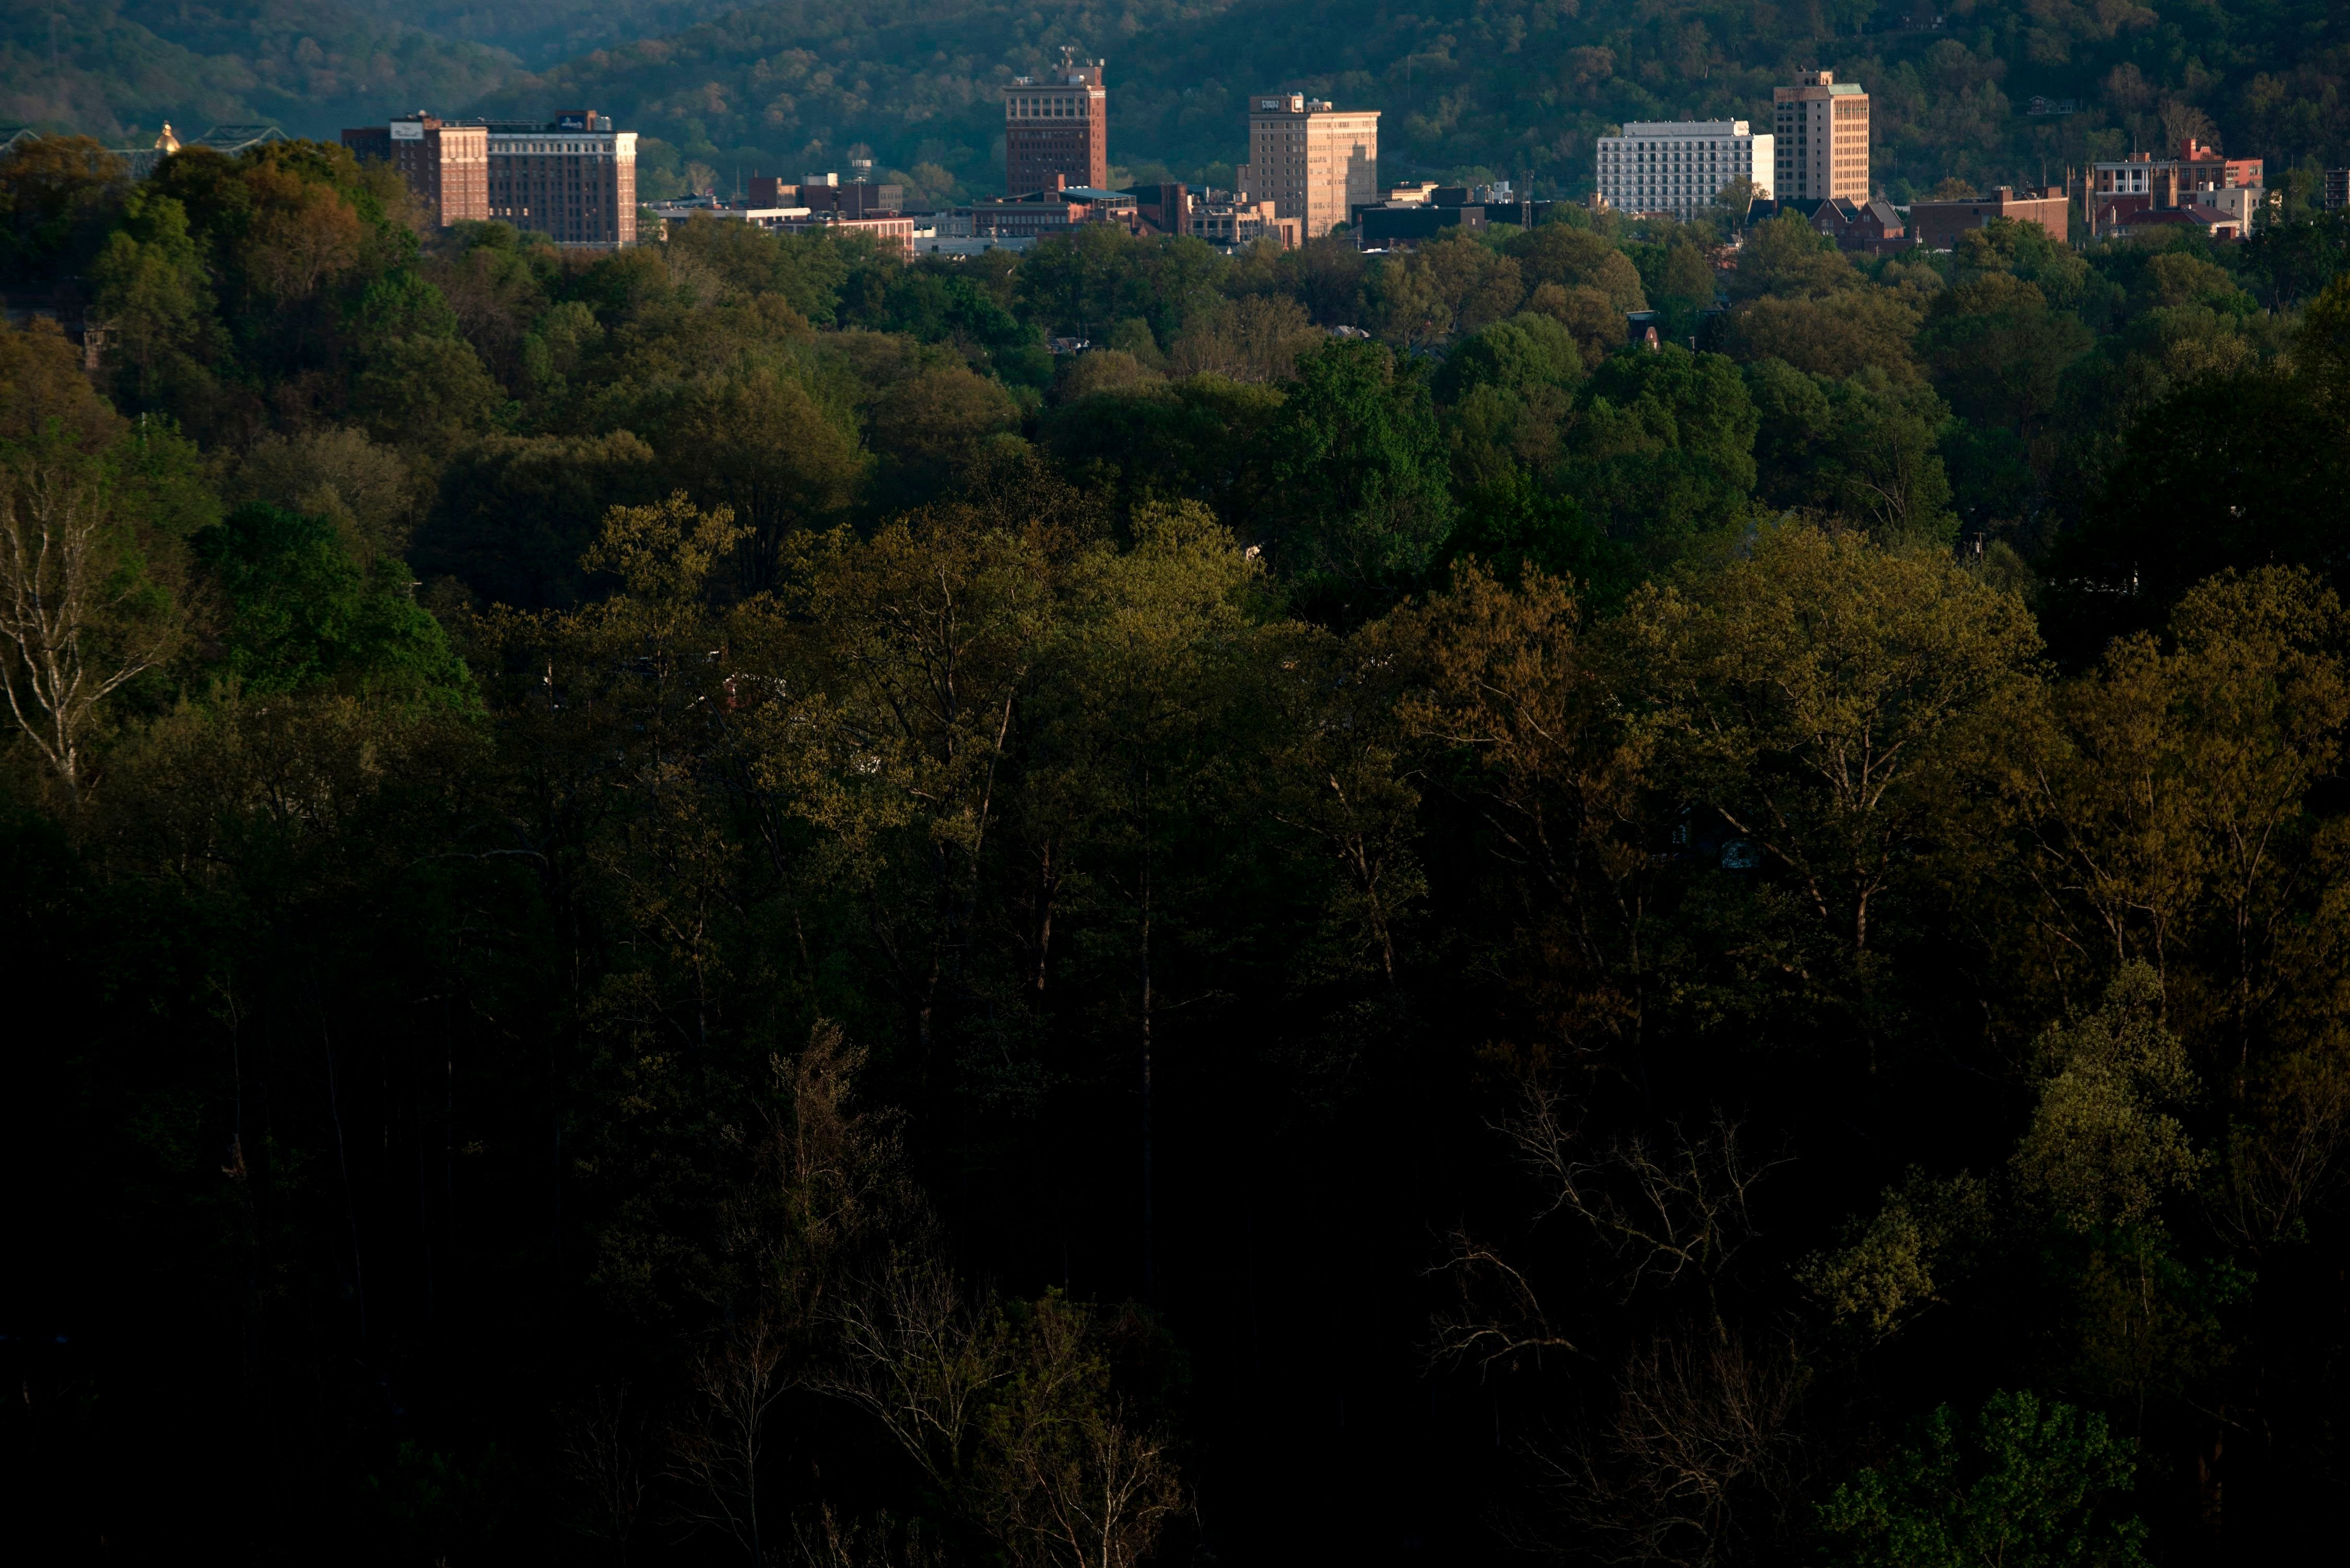 The once economically strong industrial city Huntington is seen nestled in trees along the Ohio River on April 20, 2017 in West Virginia. Huntington, the city in the northwest corner of West Virginia, bordering Kentucky, has been portrayed as the epicenter of the opioid crisis. On August 15, 2016, from 3:00 pm to 9:00 pm, 28 people in the city overdosed on heroin laced with fentanyl, a synthetic opioid far more powerful and dangerous than heroin. The economic incentives are powerful: one kilogram of fentanyl costs $5,000, which can make a million tablets sold at $20 each for a gain of $20 million. 'This epidemic doesn't discriminate,' Huntington Mayor Steve Williams said. 'Our youngest overdose was 12 years old. The oldest was 77.'  / AFP PHOTO / Brendan Smialowski / TO GO WITH AFP STORY by Heather SCOTT, US-health-drugs-WestVirginia        (Photo credit should read BRENDAN SMIALOWSKI/AFP/Getty Images)